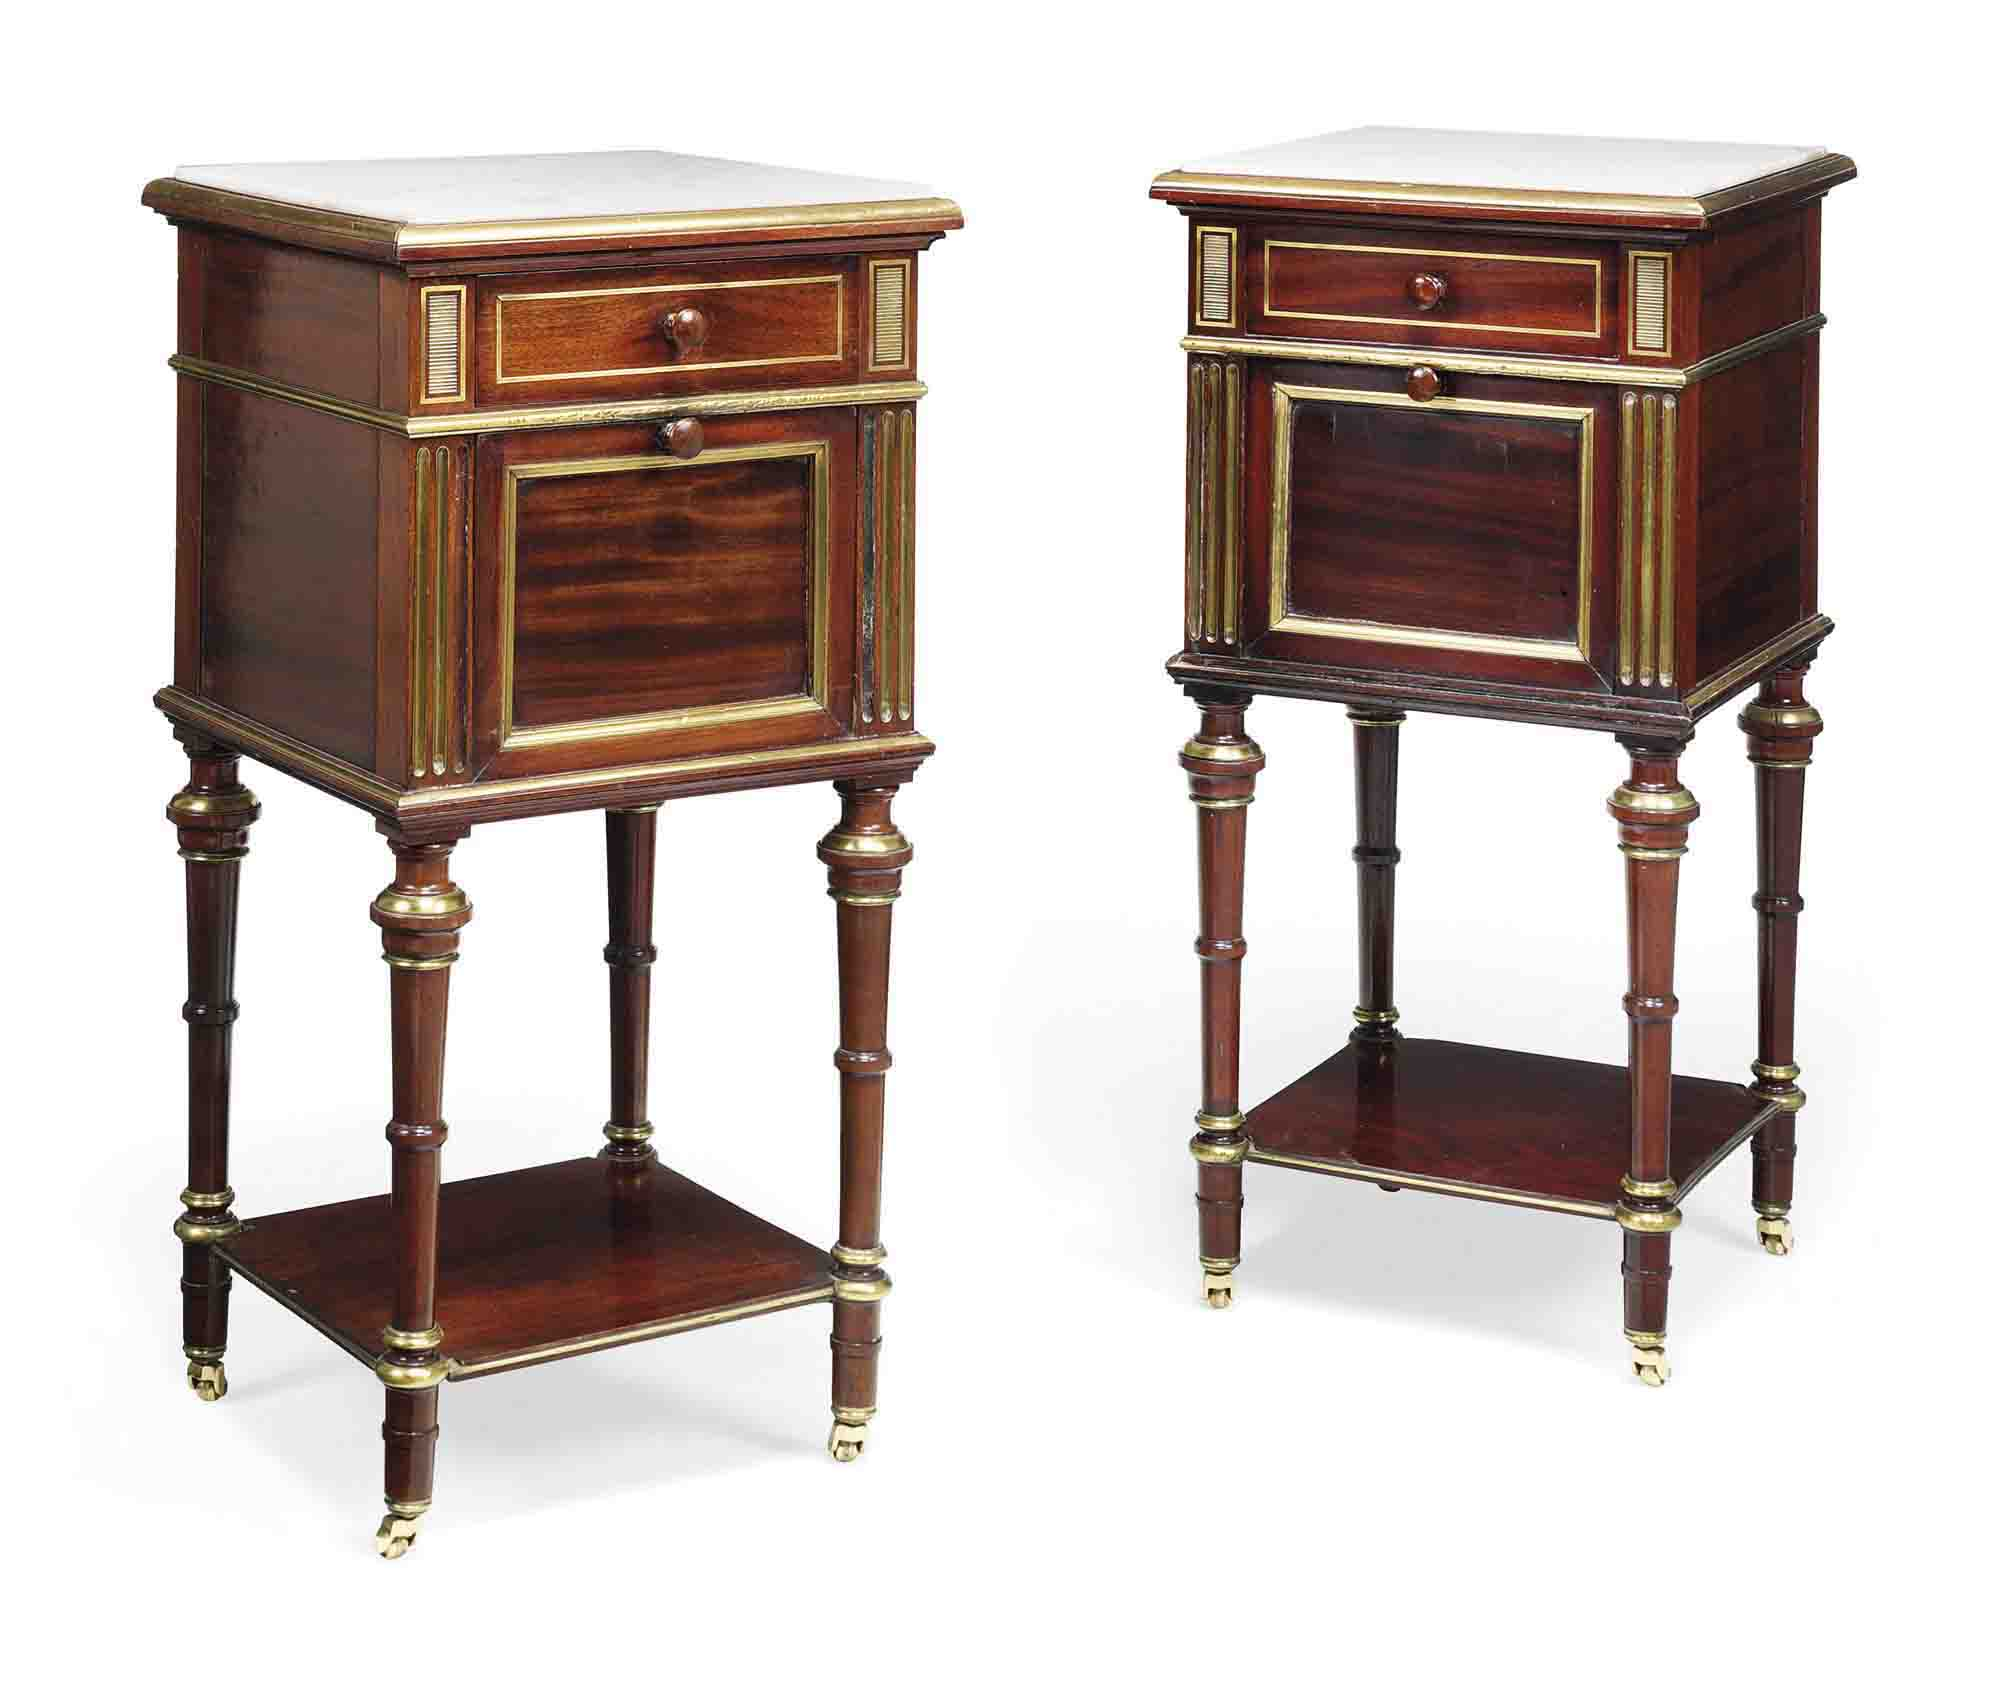 A PAIR OF FRENCH BRASS MOUNTED MAHOGANY BEDSIDE CABINETS